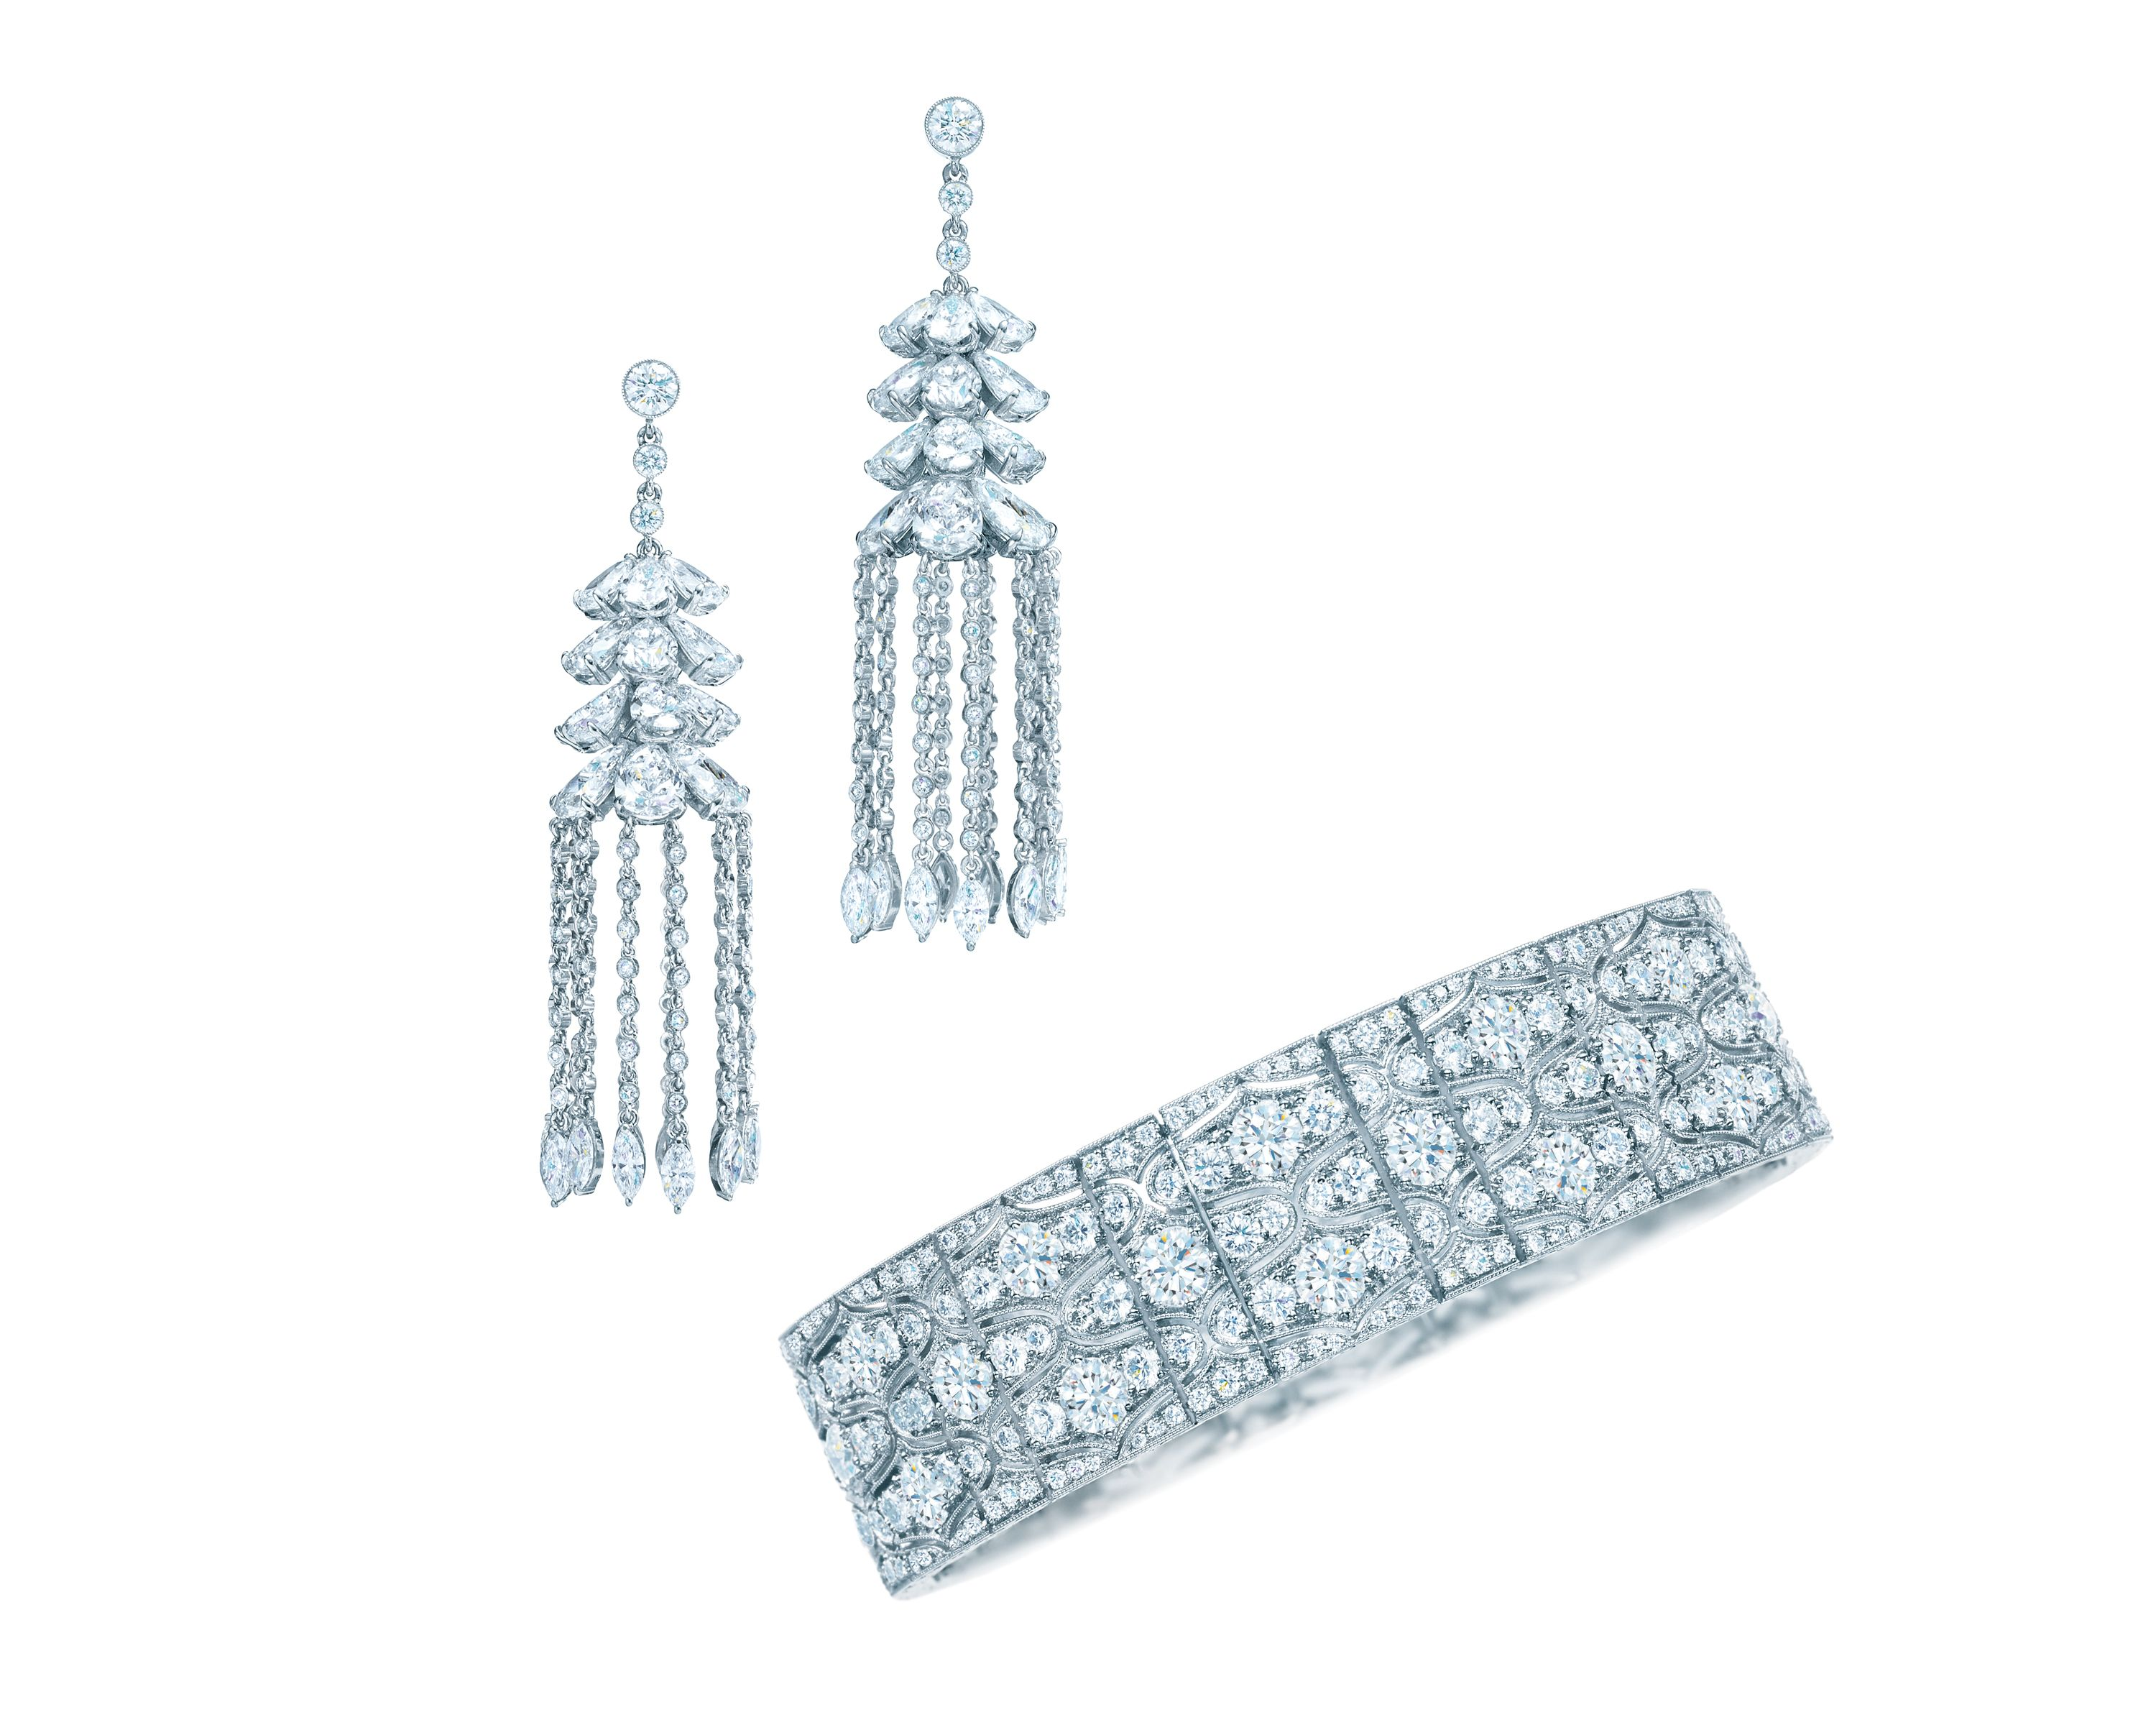 cab co solitaire brilliant round platinum earrings studs tiffany diamond